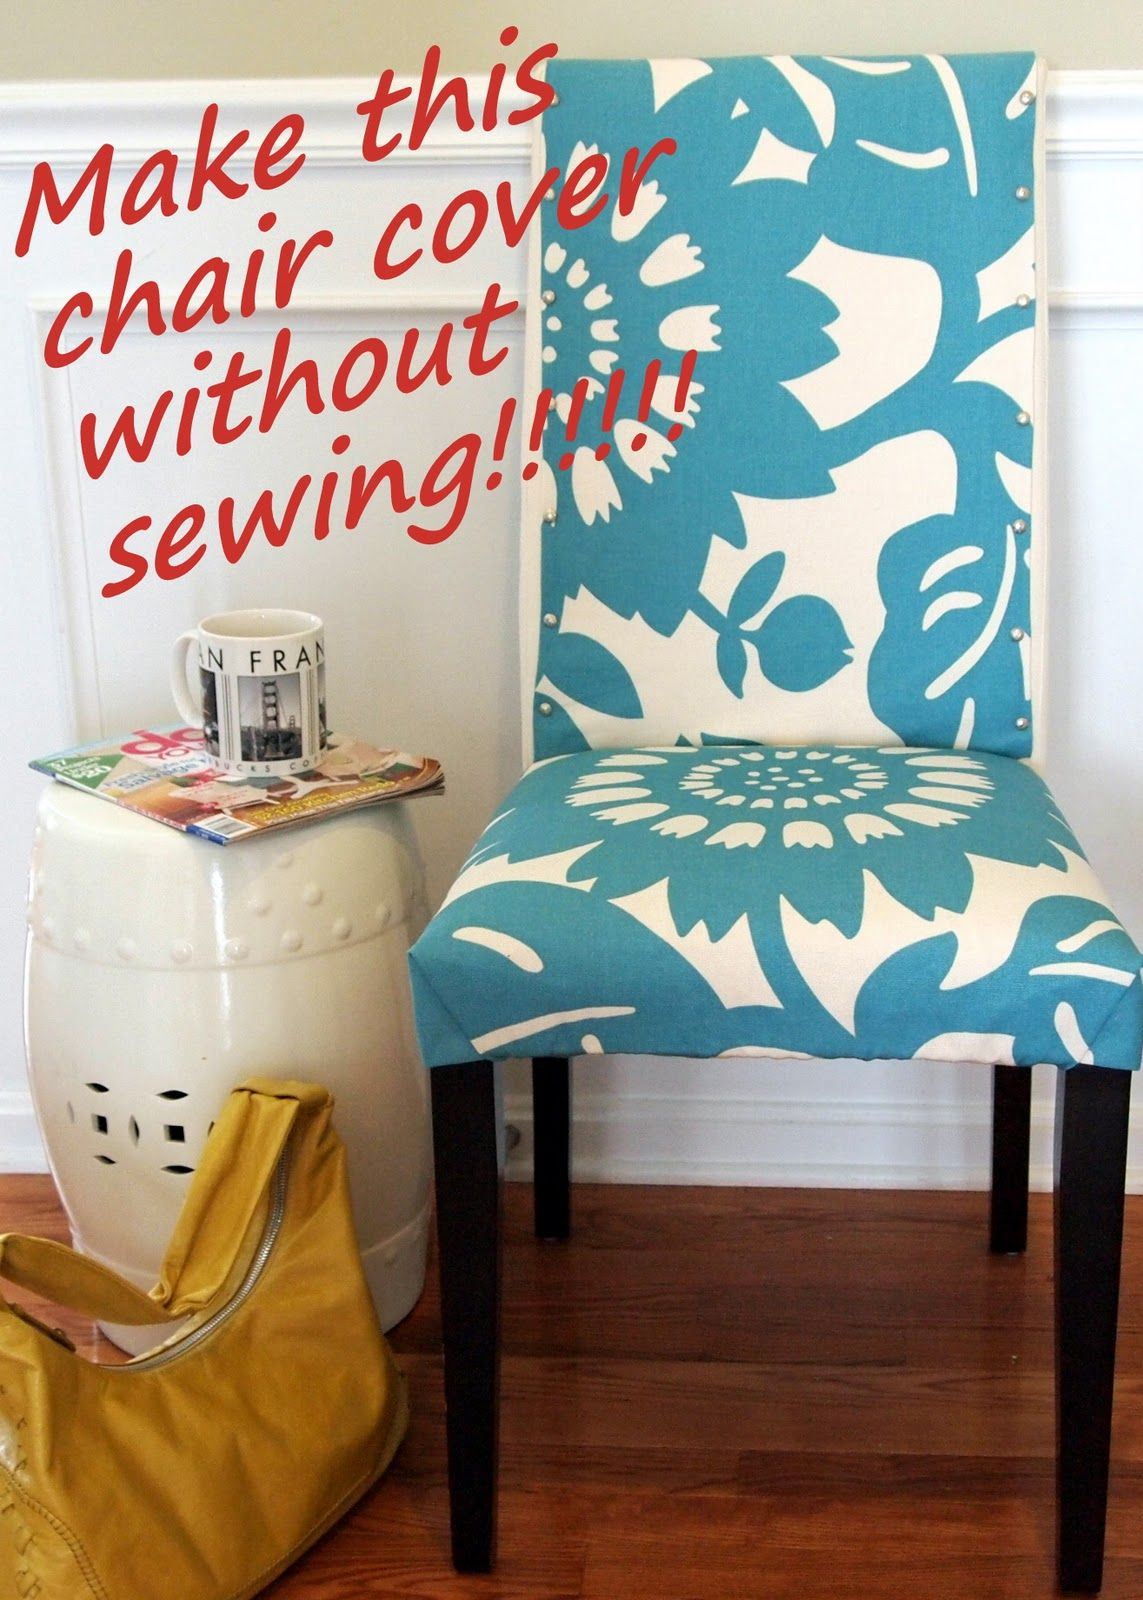 Diy Dining Room Chair Covers  Easy Sew Dining Chair Covers Pleasing Fabric Chair Covers For Dining Room Chairs Design Inspiration